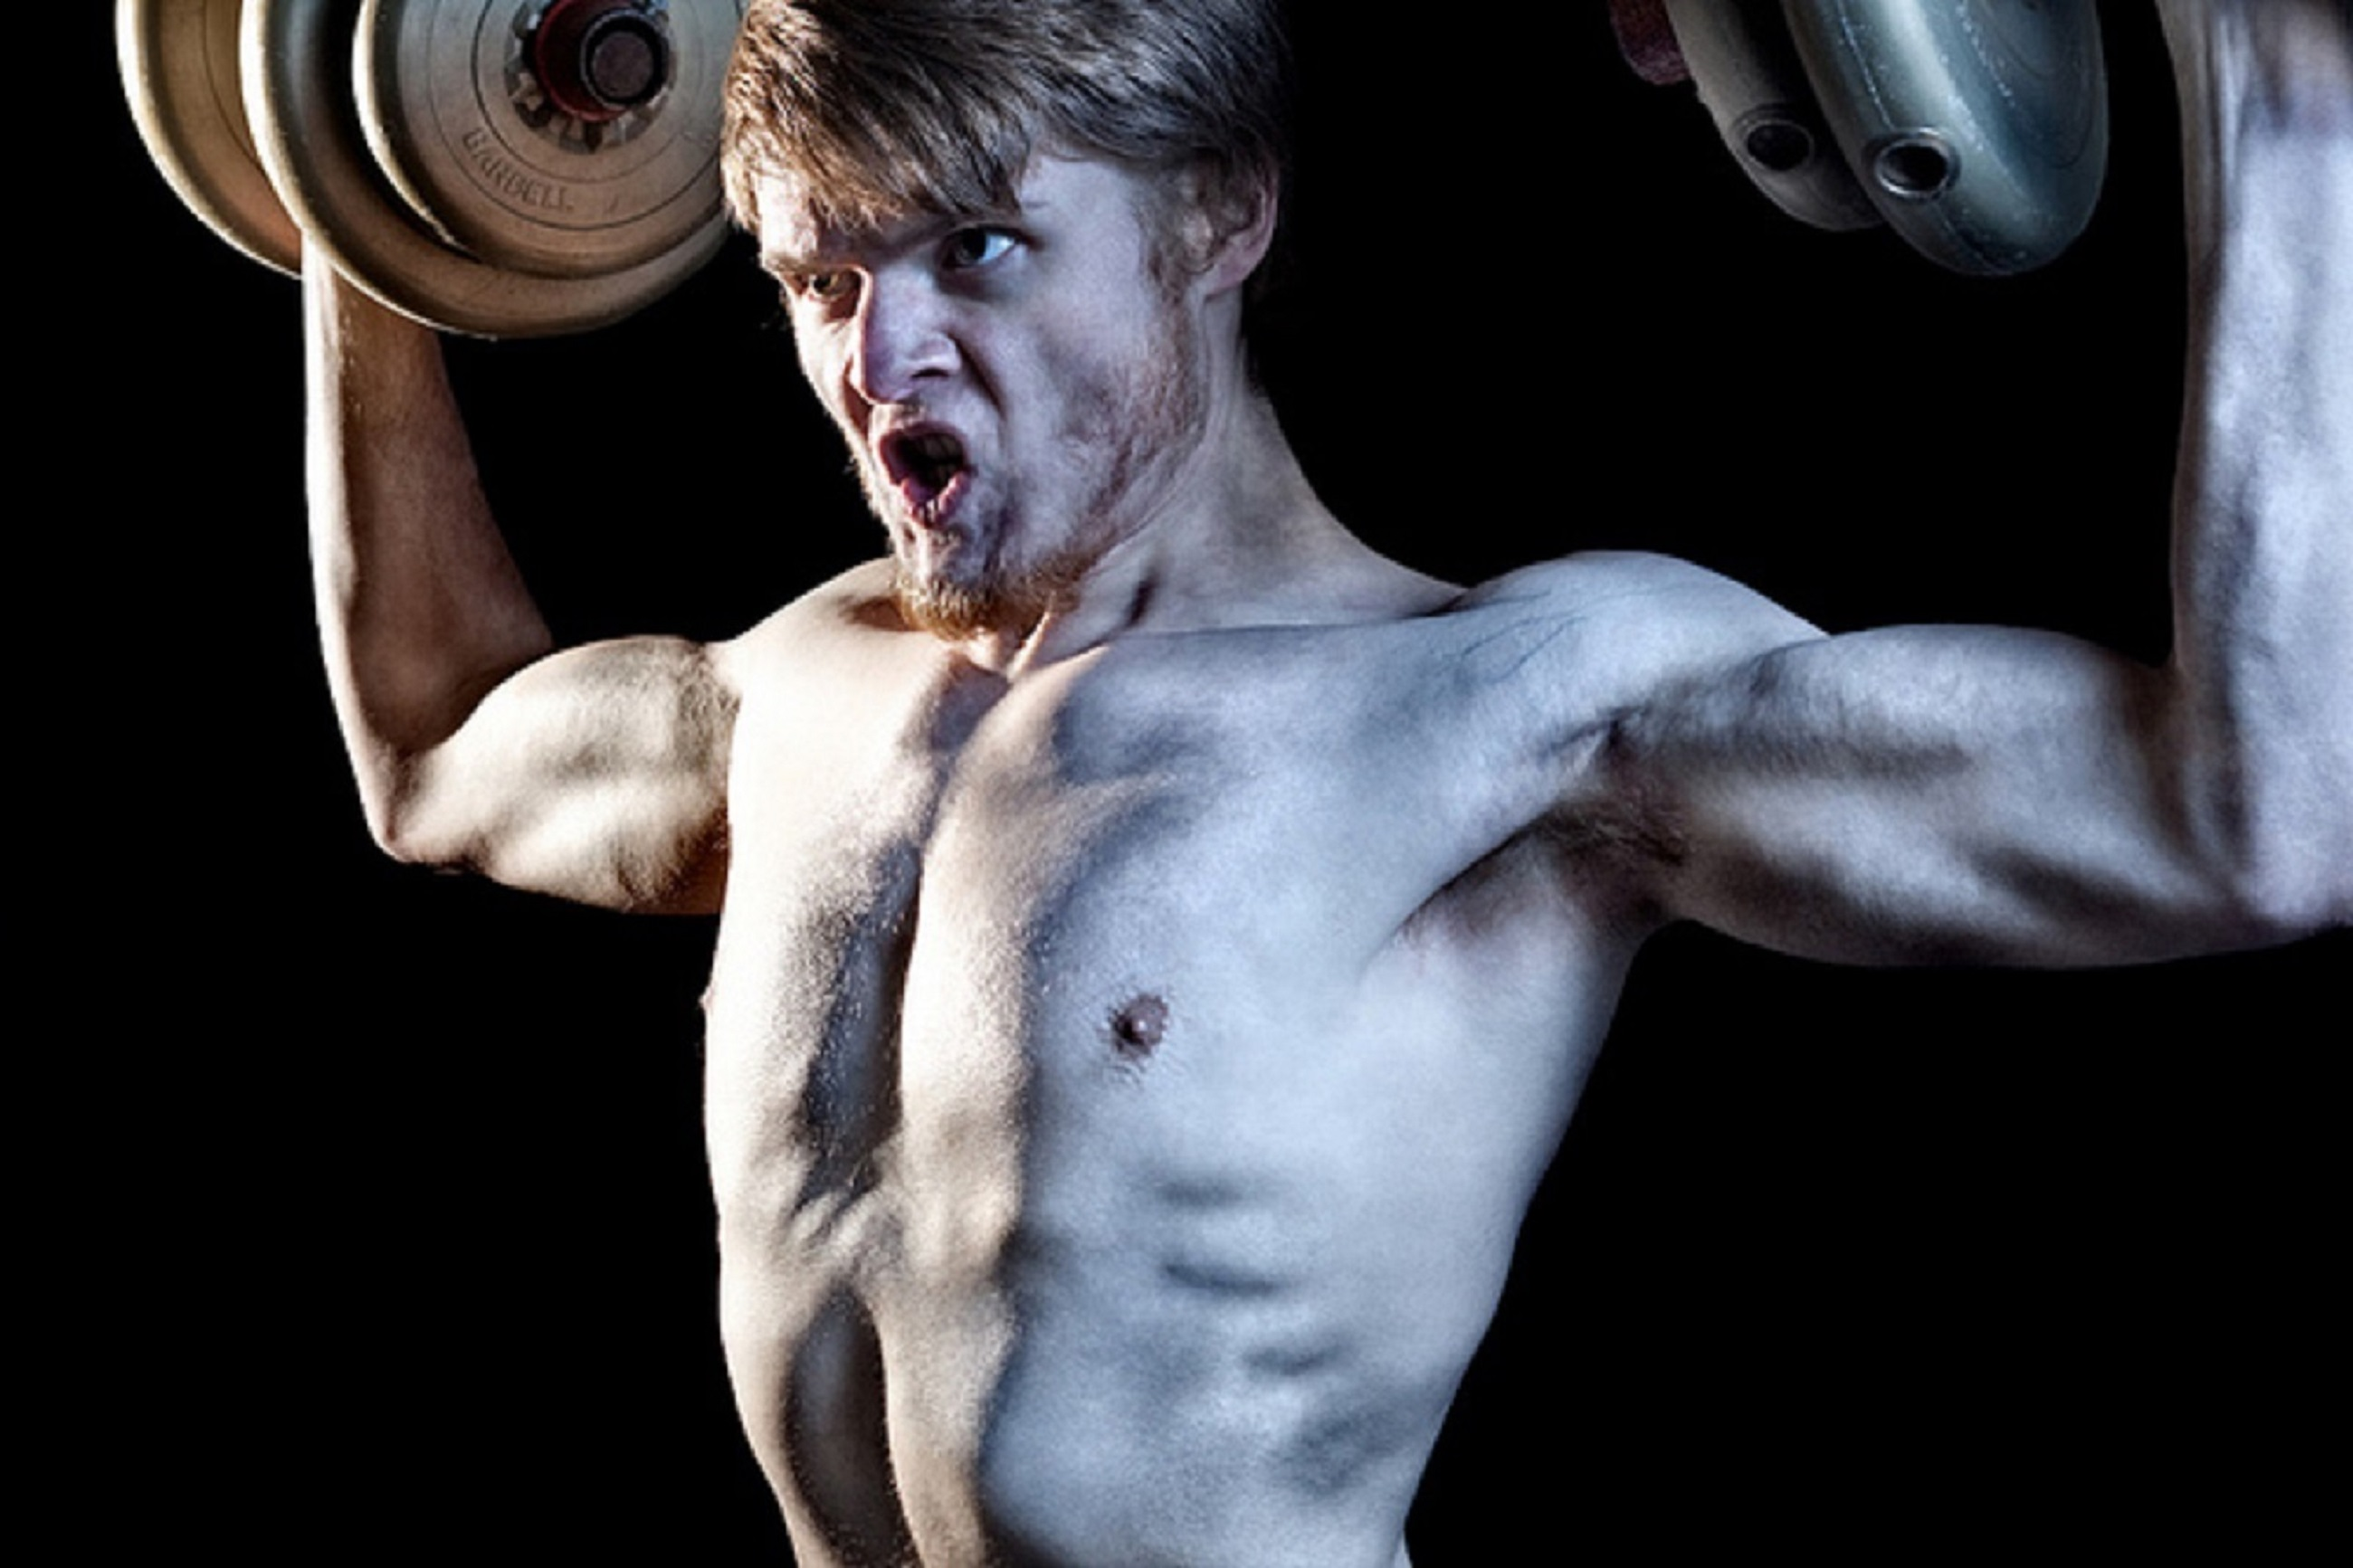 Pin by Alexsandre Portier on Physically fit guys in 2020